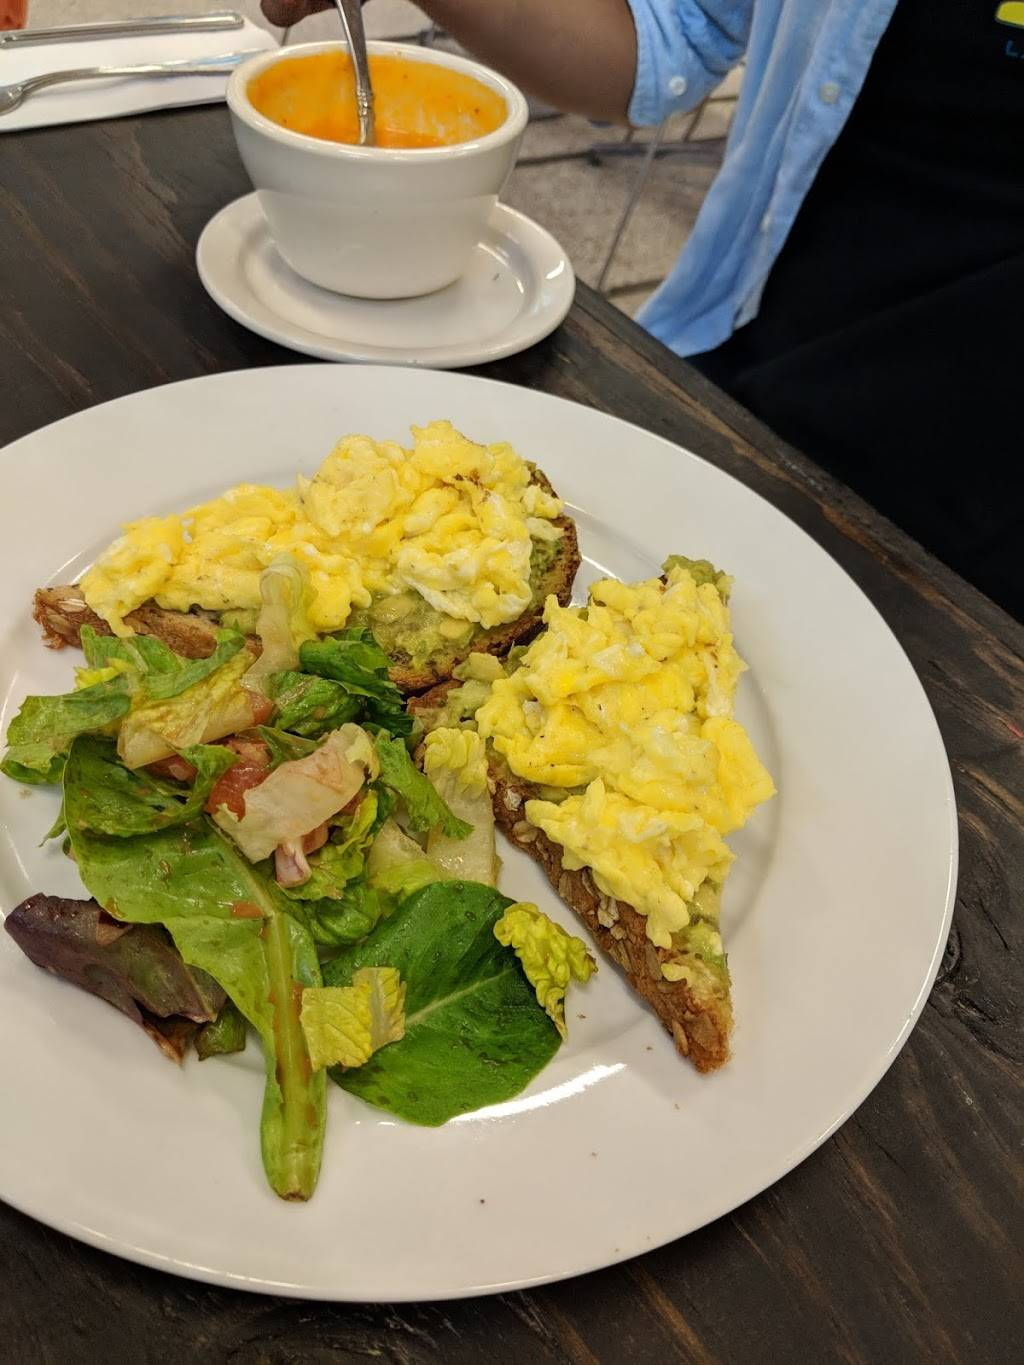 Side Park Cafe | restaurant | 1230 5th Ave, New York, NY 10029, USA | 2126607150 OR +1 212-660-7150